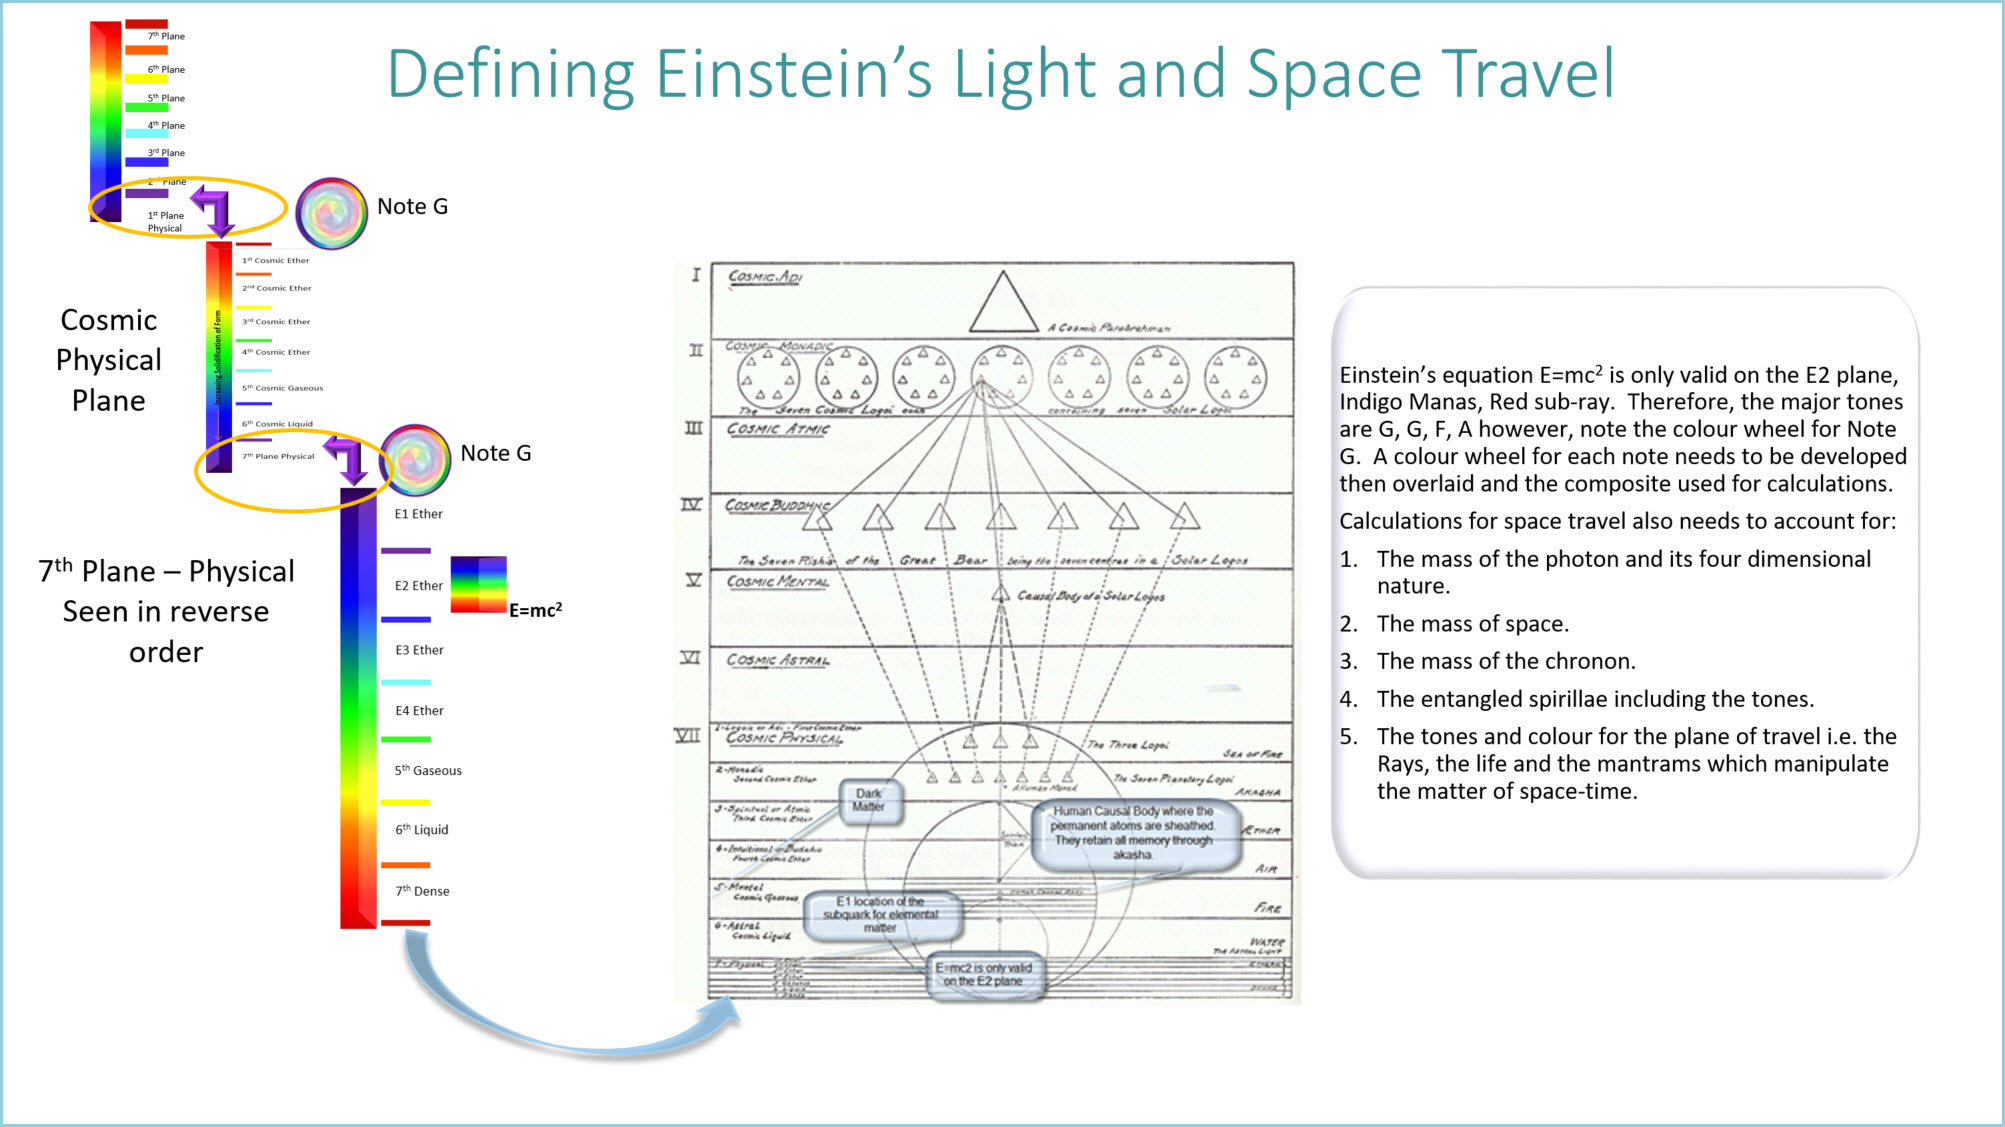 Defining Einstein's Light and Space Travel